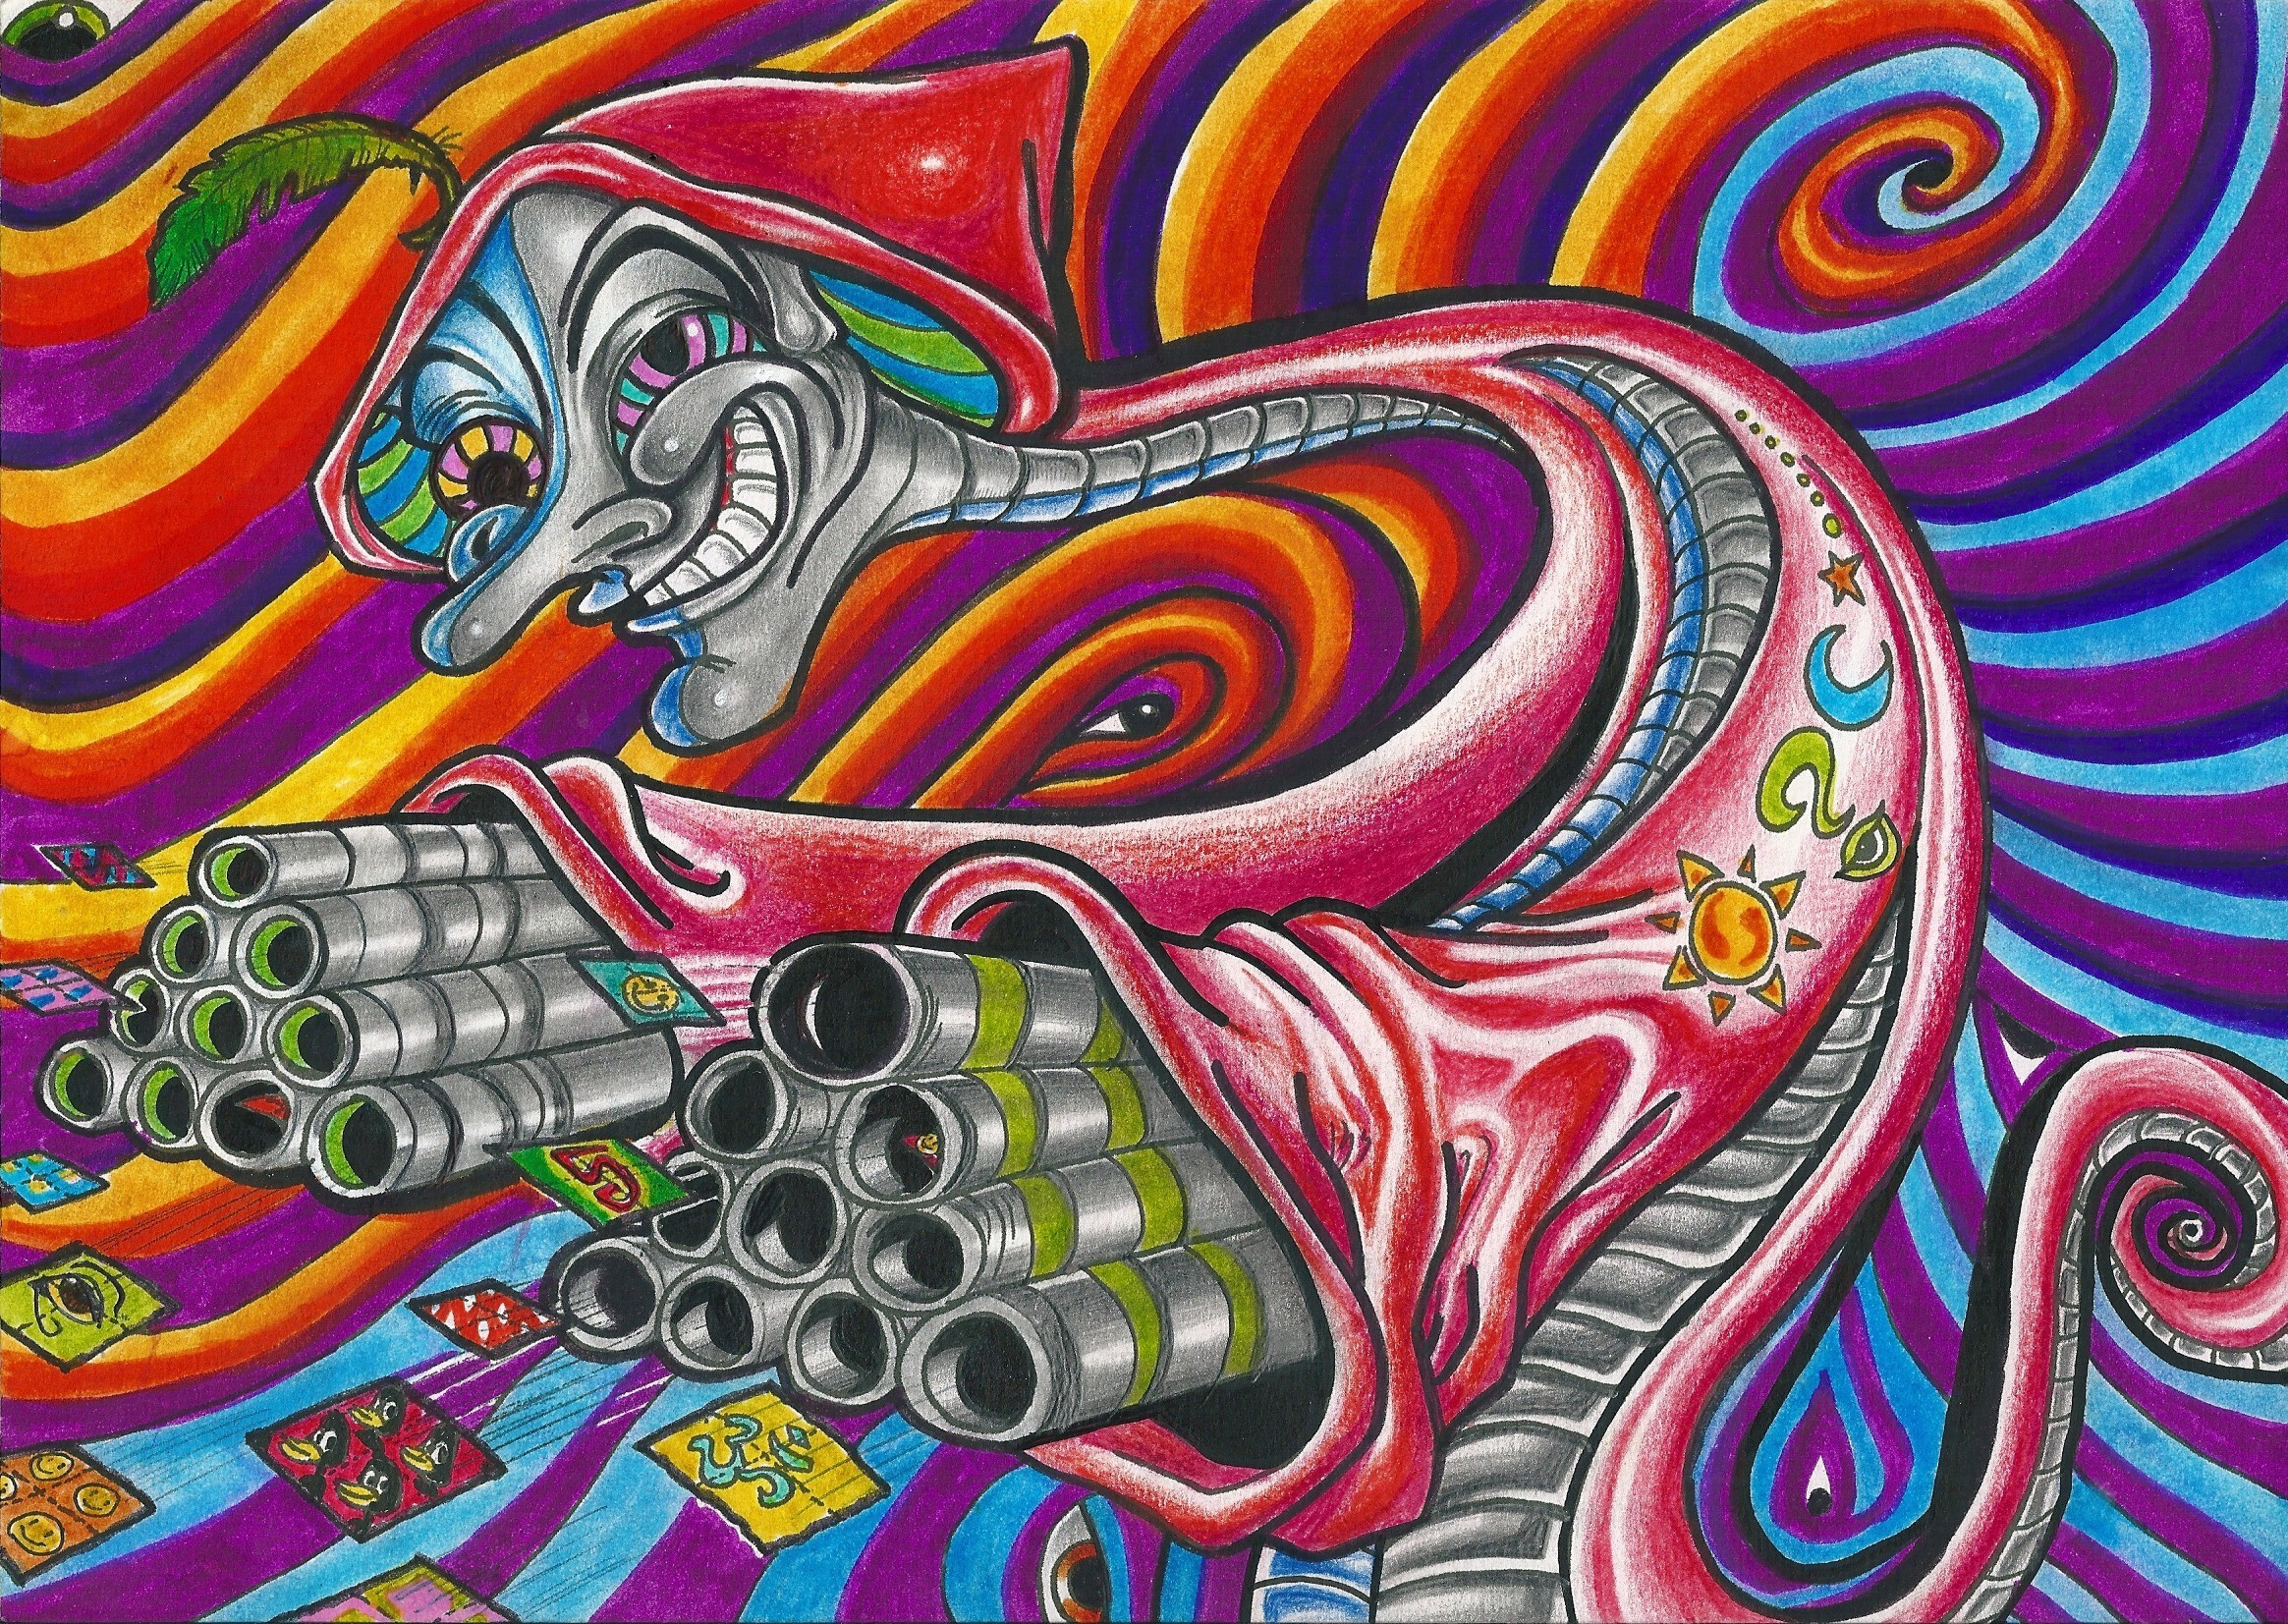 acid trip background trippy backgrounds tunnel pipes wallpapers flo psychedelic hippie sun wiki drawing pic deviantart shroom space joker drawings